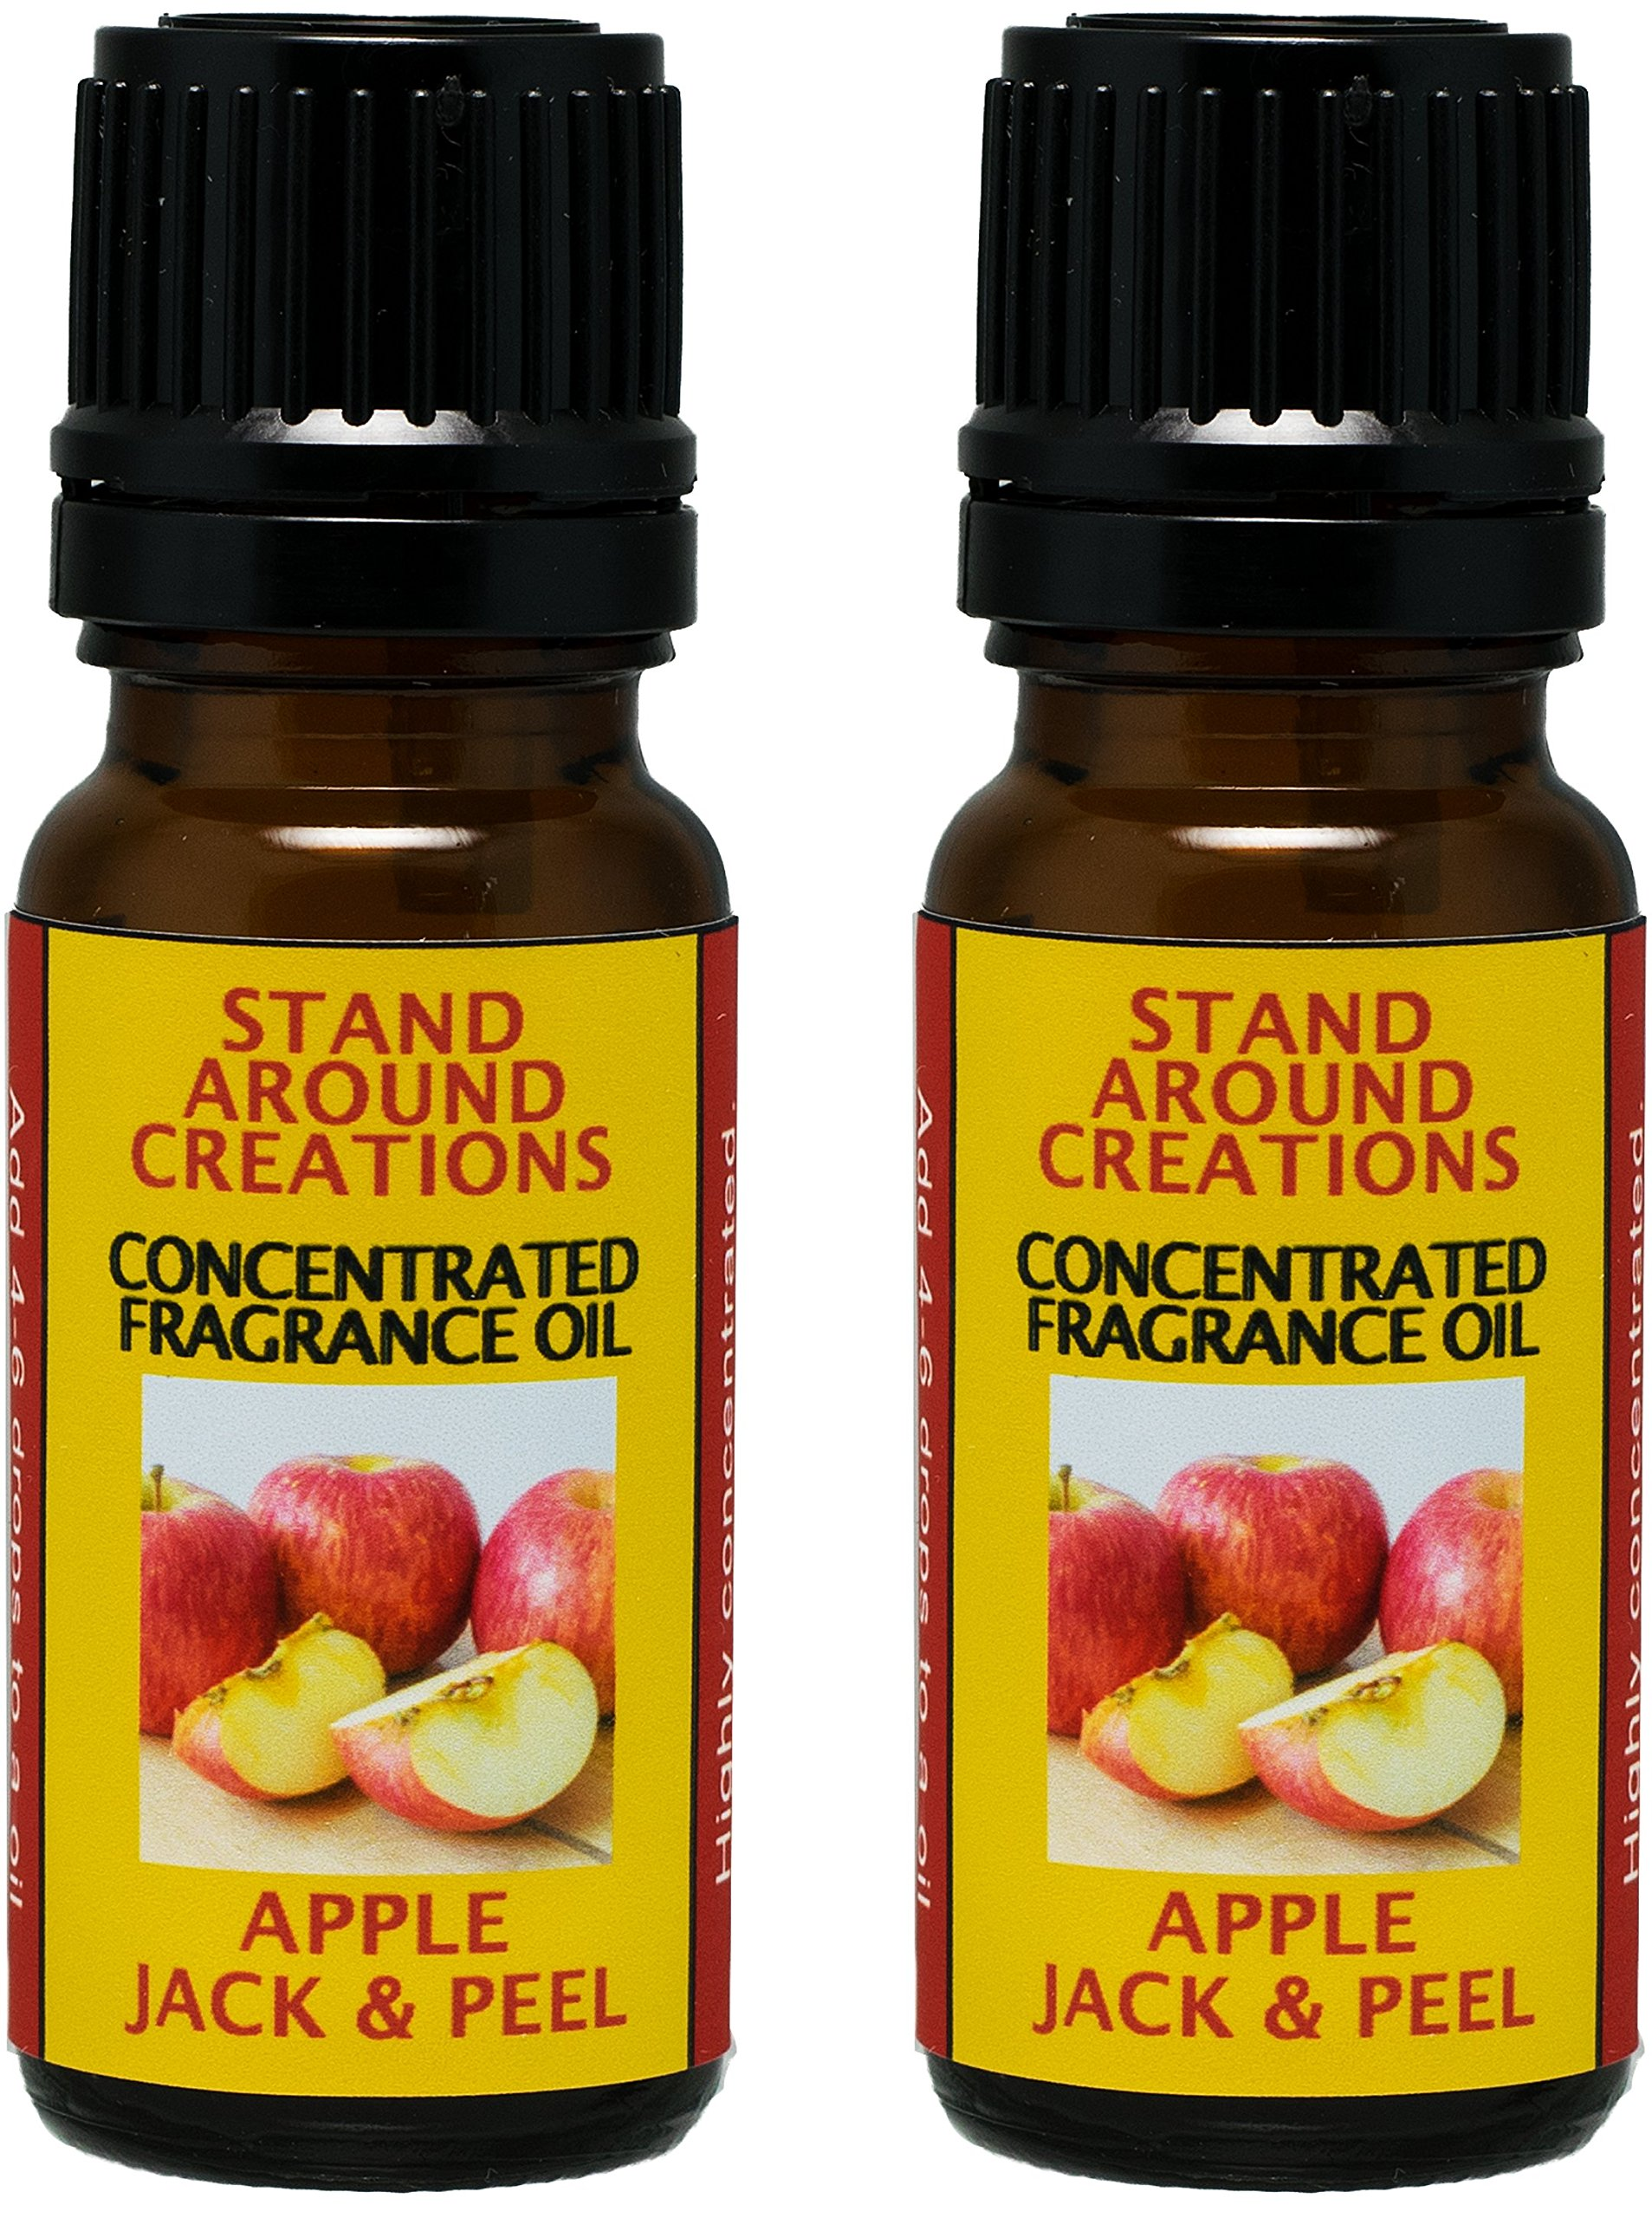 Set of 2 - Concentrated Fragrance Oil - Apple Jack & Peel - Apples and oranges blended w/ cinnamon, clove, nutmeg. Infused w/essential oils. (.33 fl.oz.)